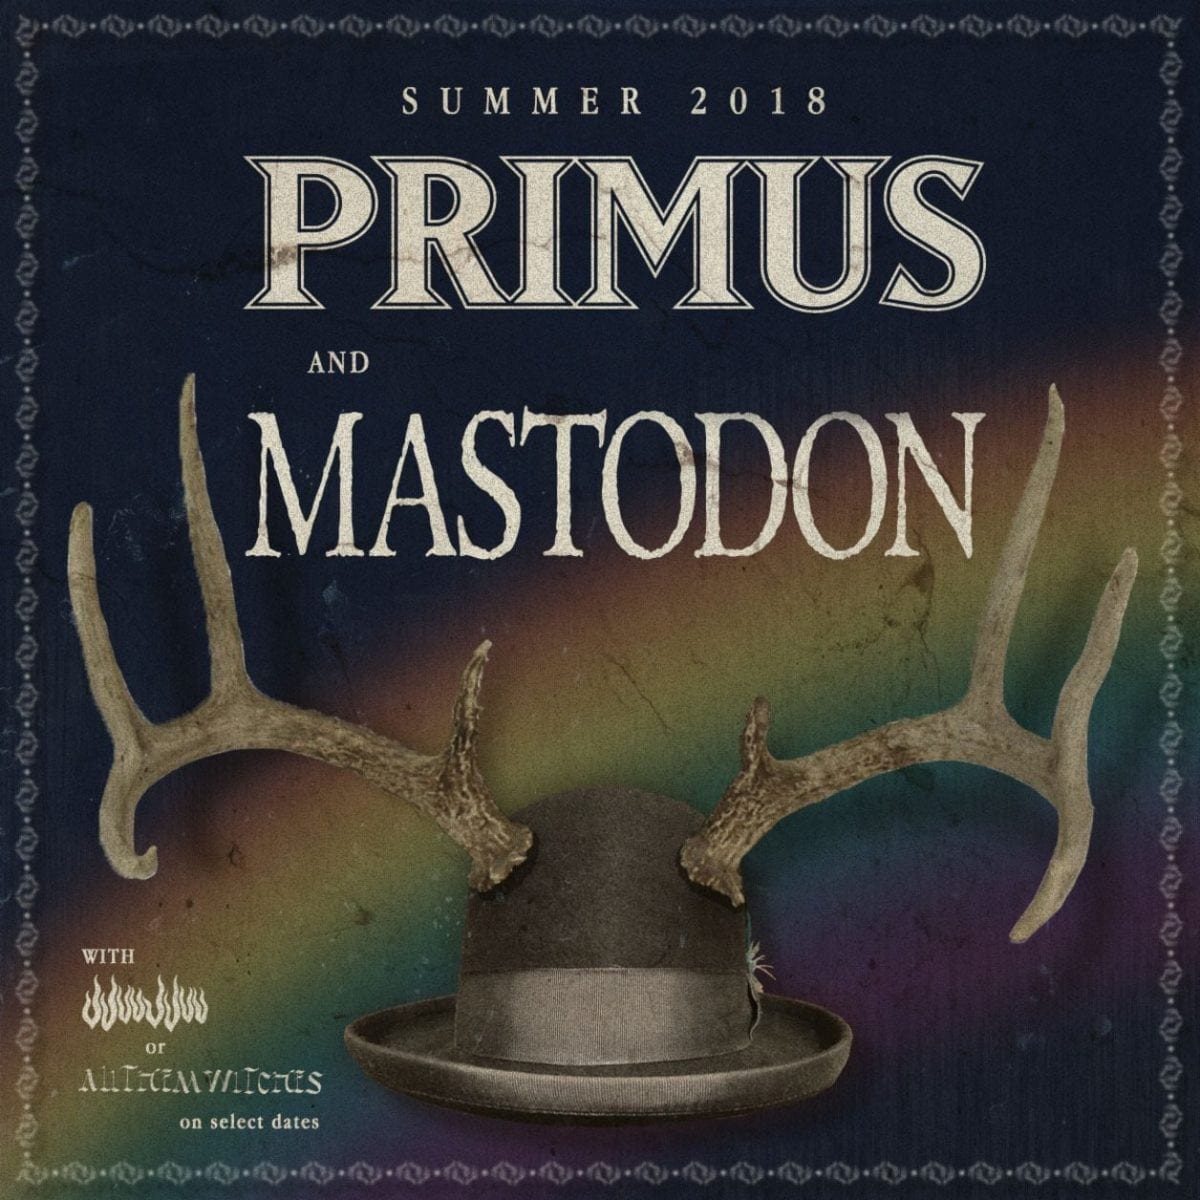 8342ff2c324d Primus and Mastodon are hitting the road together this year for a huge  summer tour. Stretching non-step from the beginning of May to early July